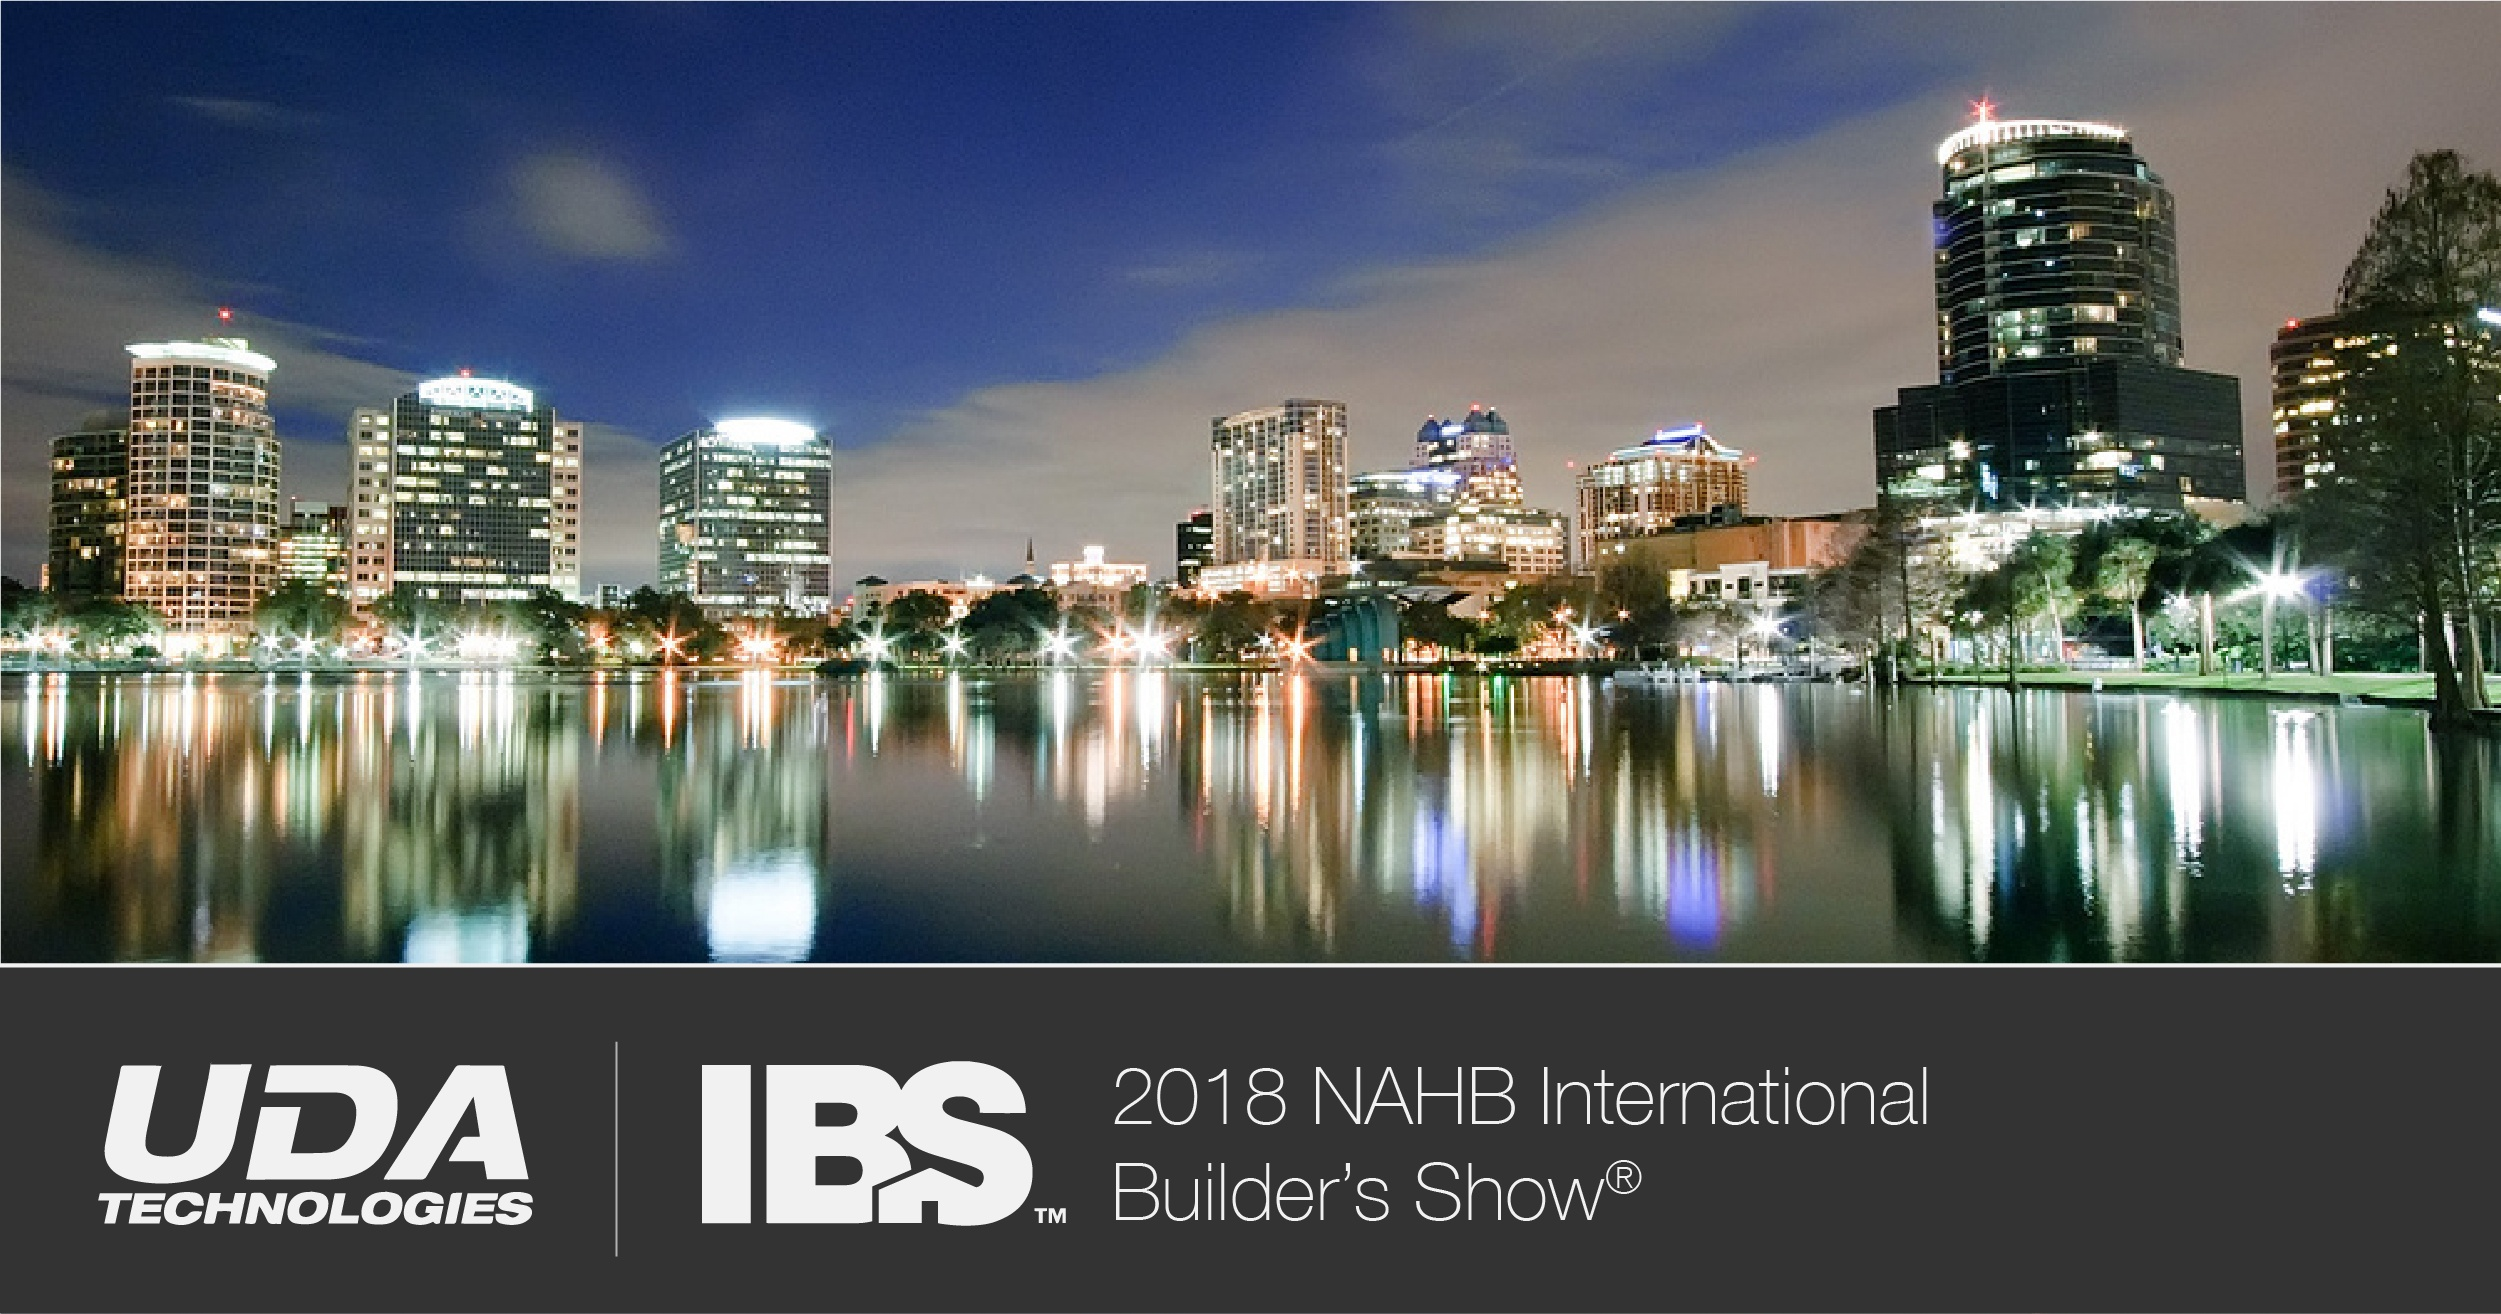 UDA Technologies Announces Attendance at IBS 2018